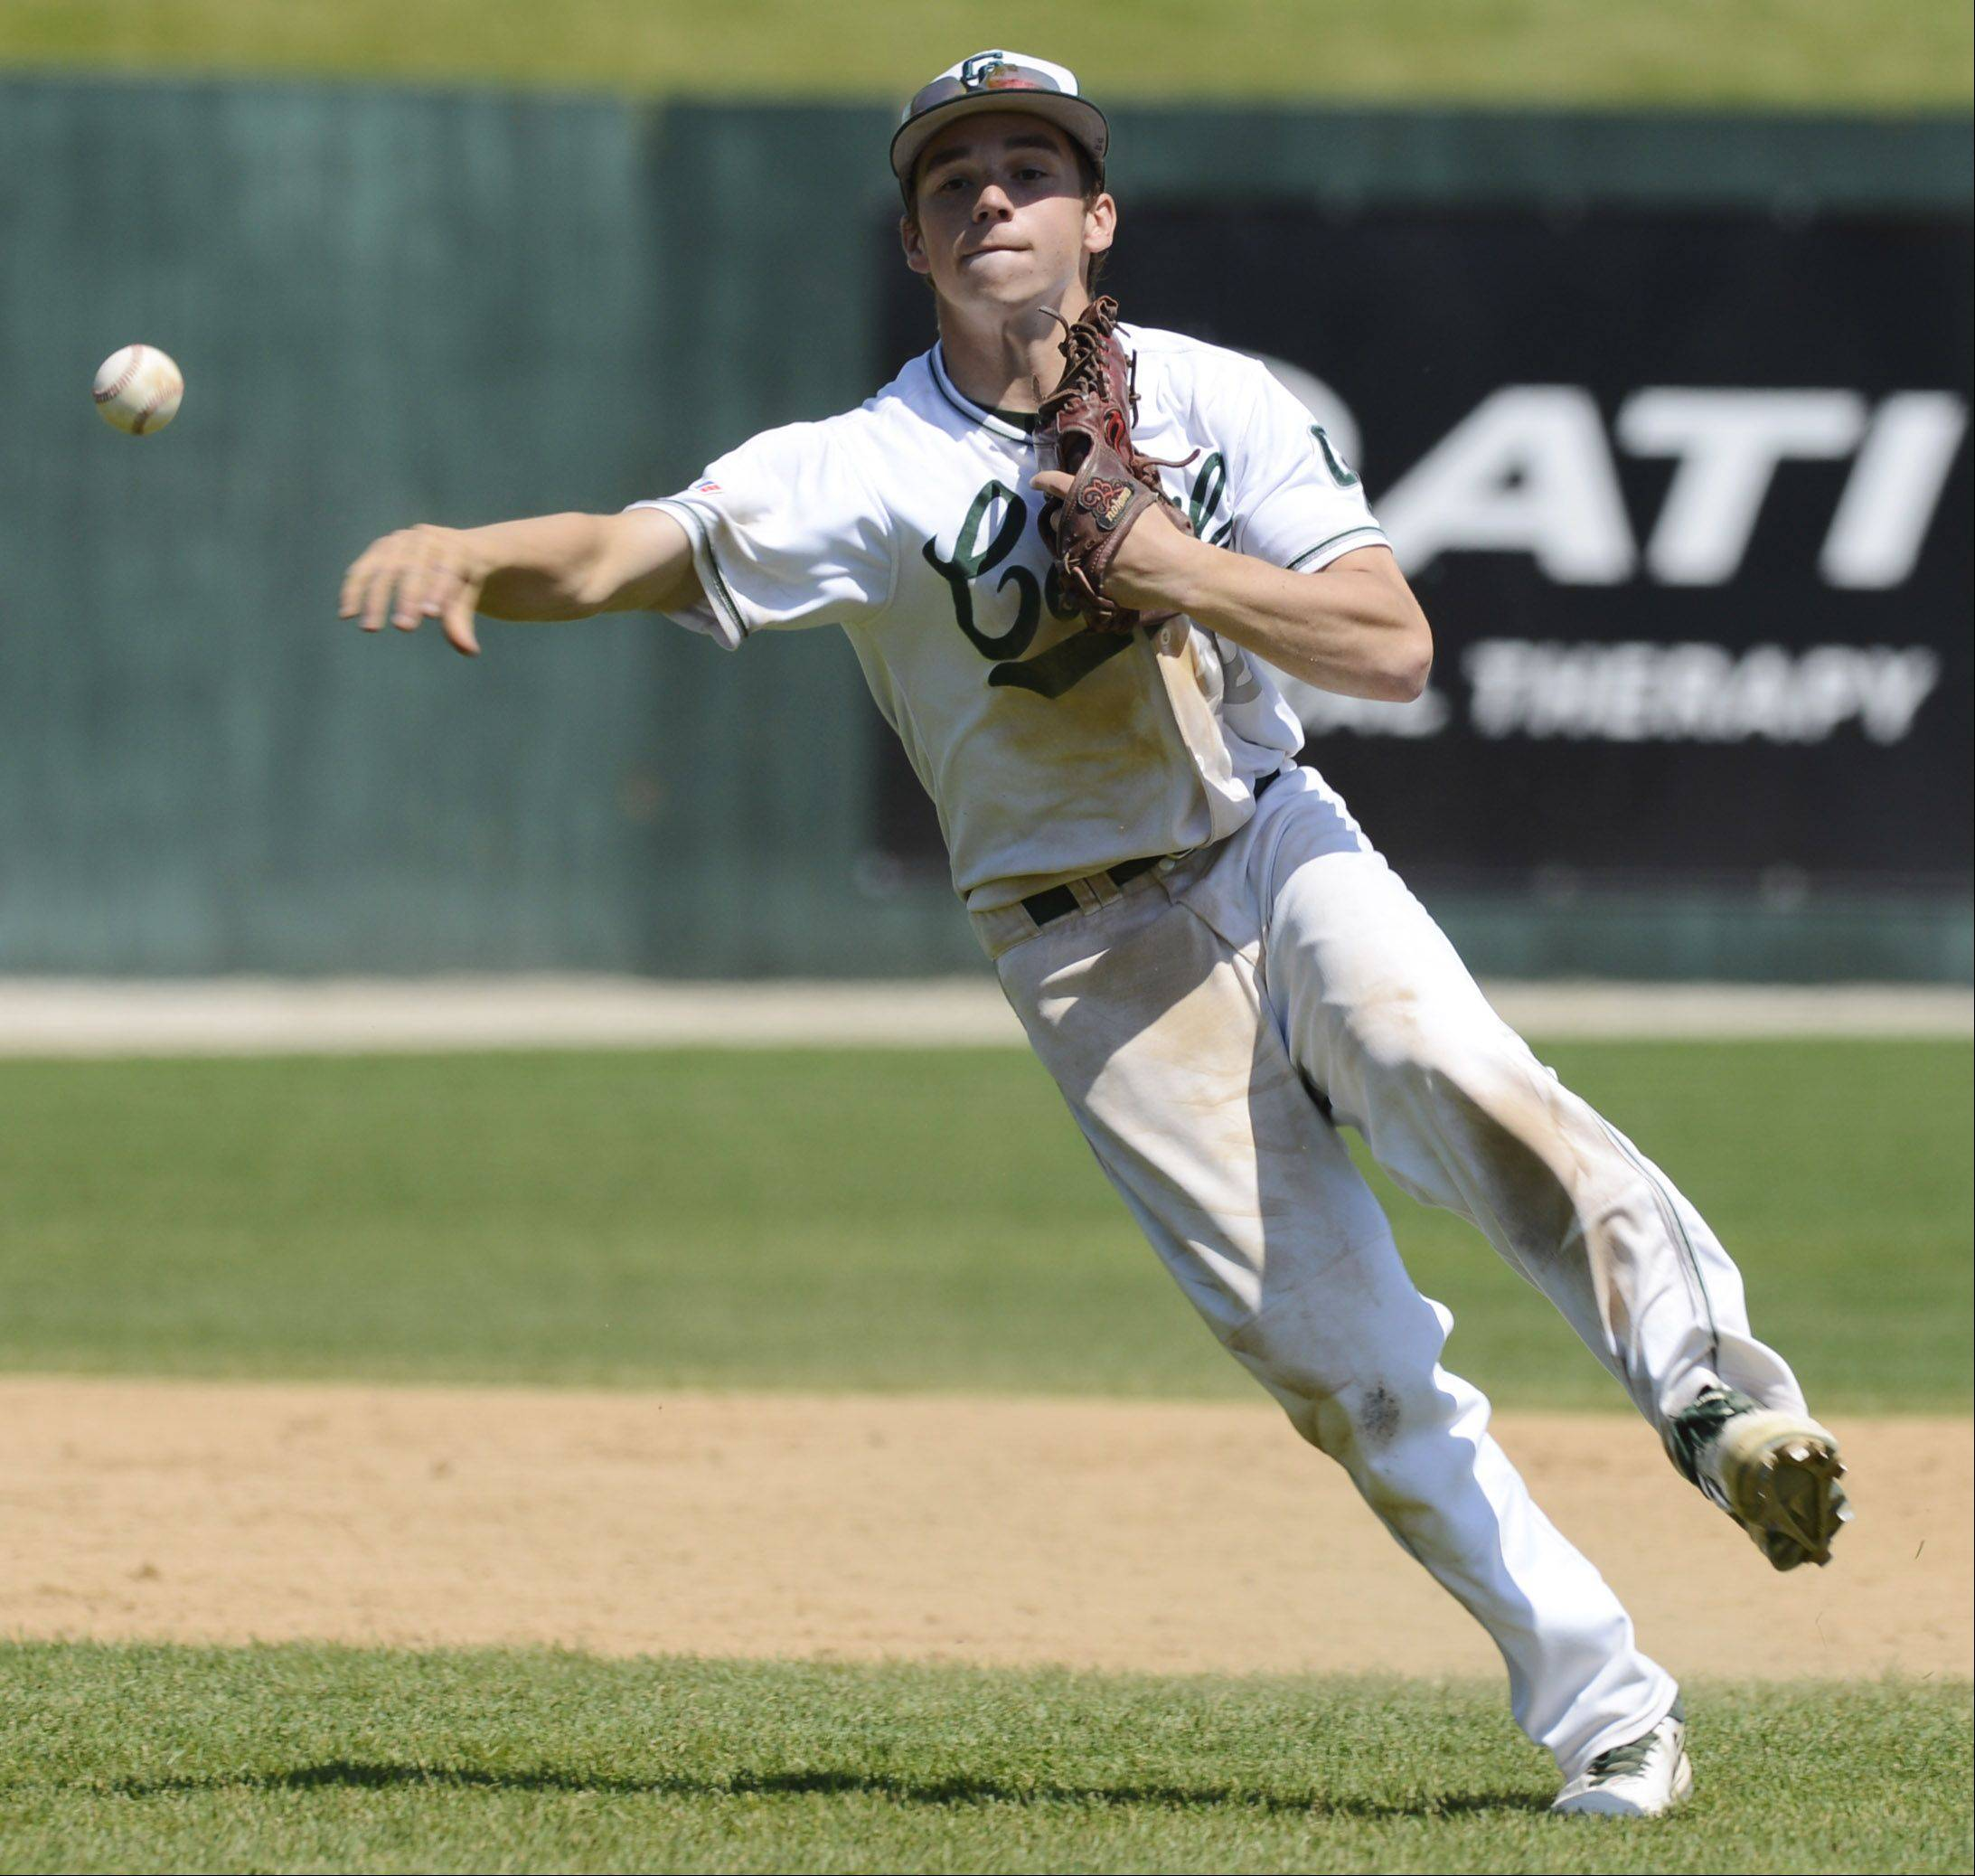 Grayslake Central's Ryan Fontana makes a throw to first during the Class 3A state baseball semifinal against St. Francis at Silver Cross Field in Joliet Friday.